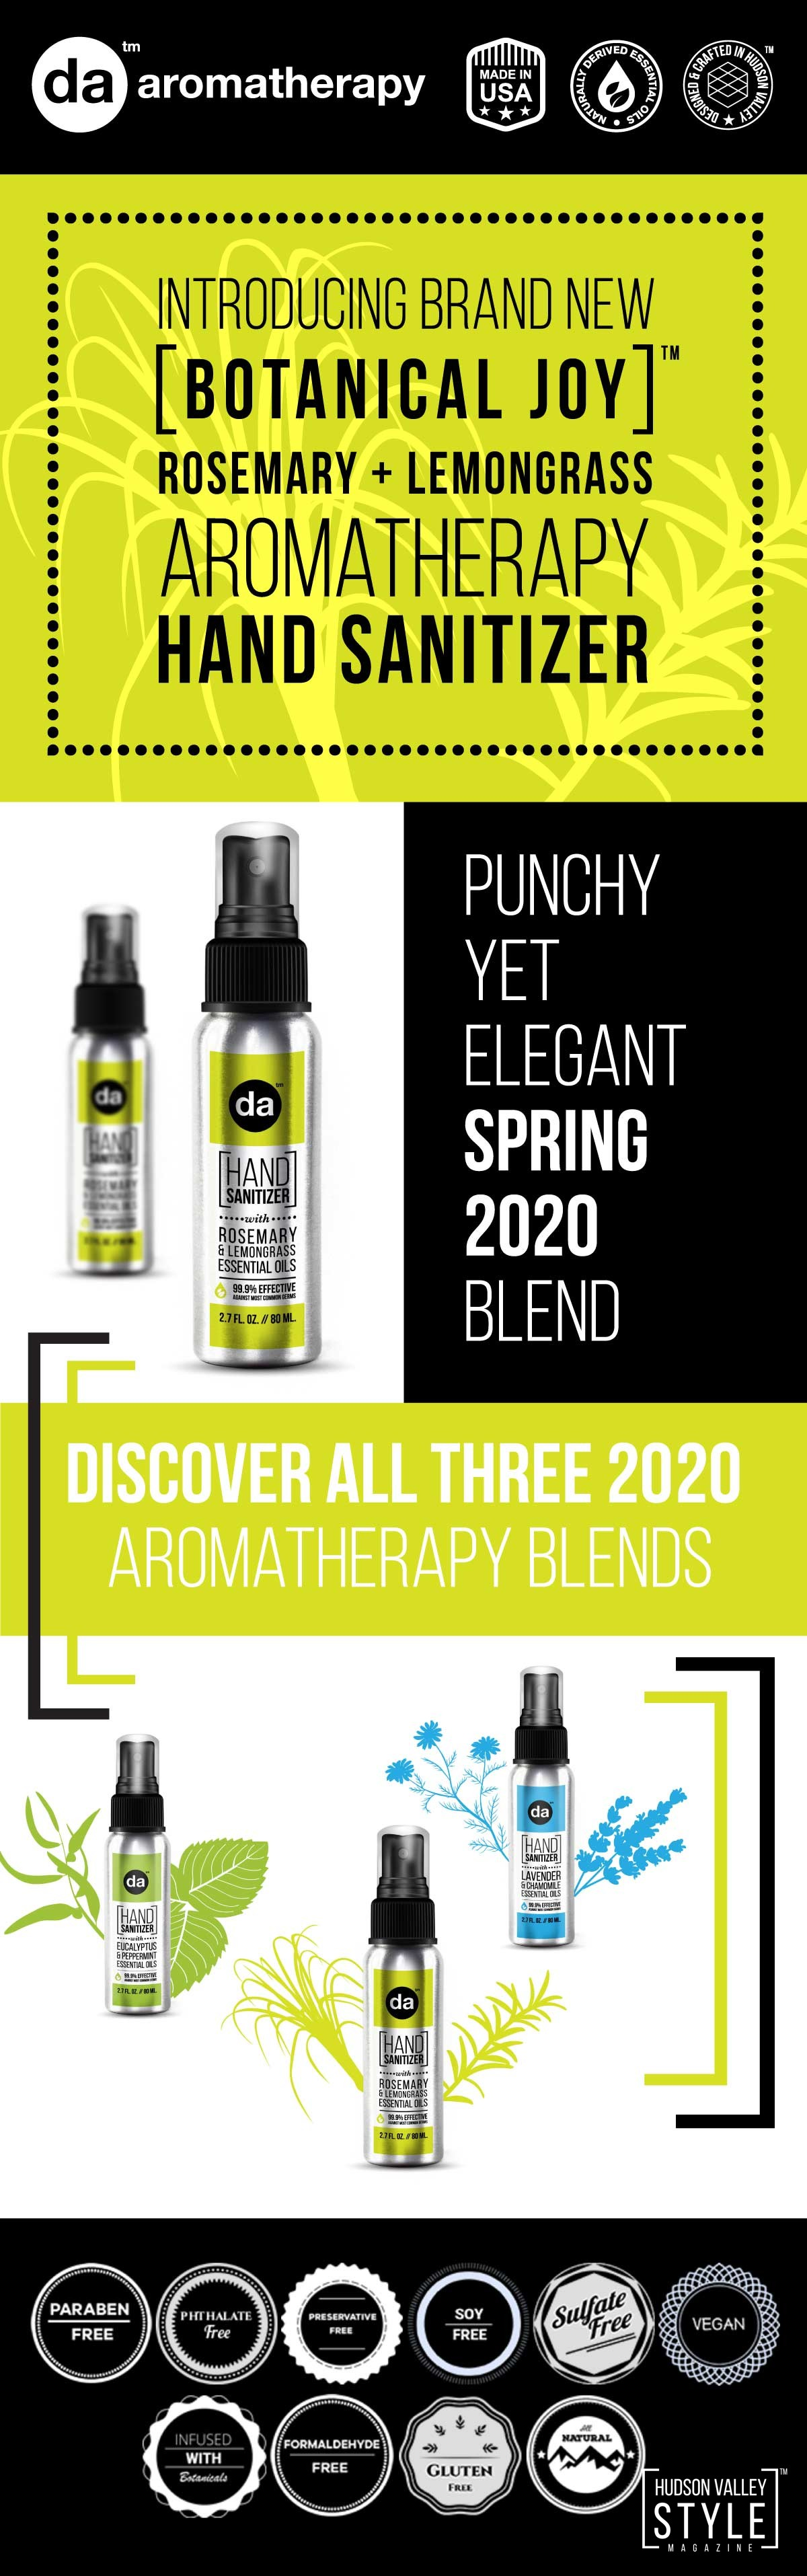 Infographic - Celebrate Spring with DA Aromatherapy's Brand New Lemongrass and Rosemary Blend